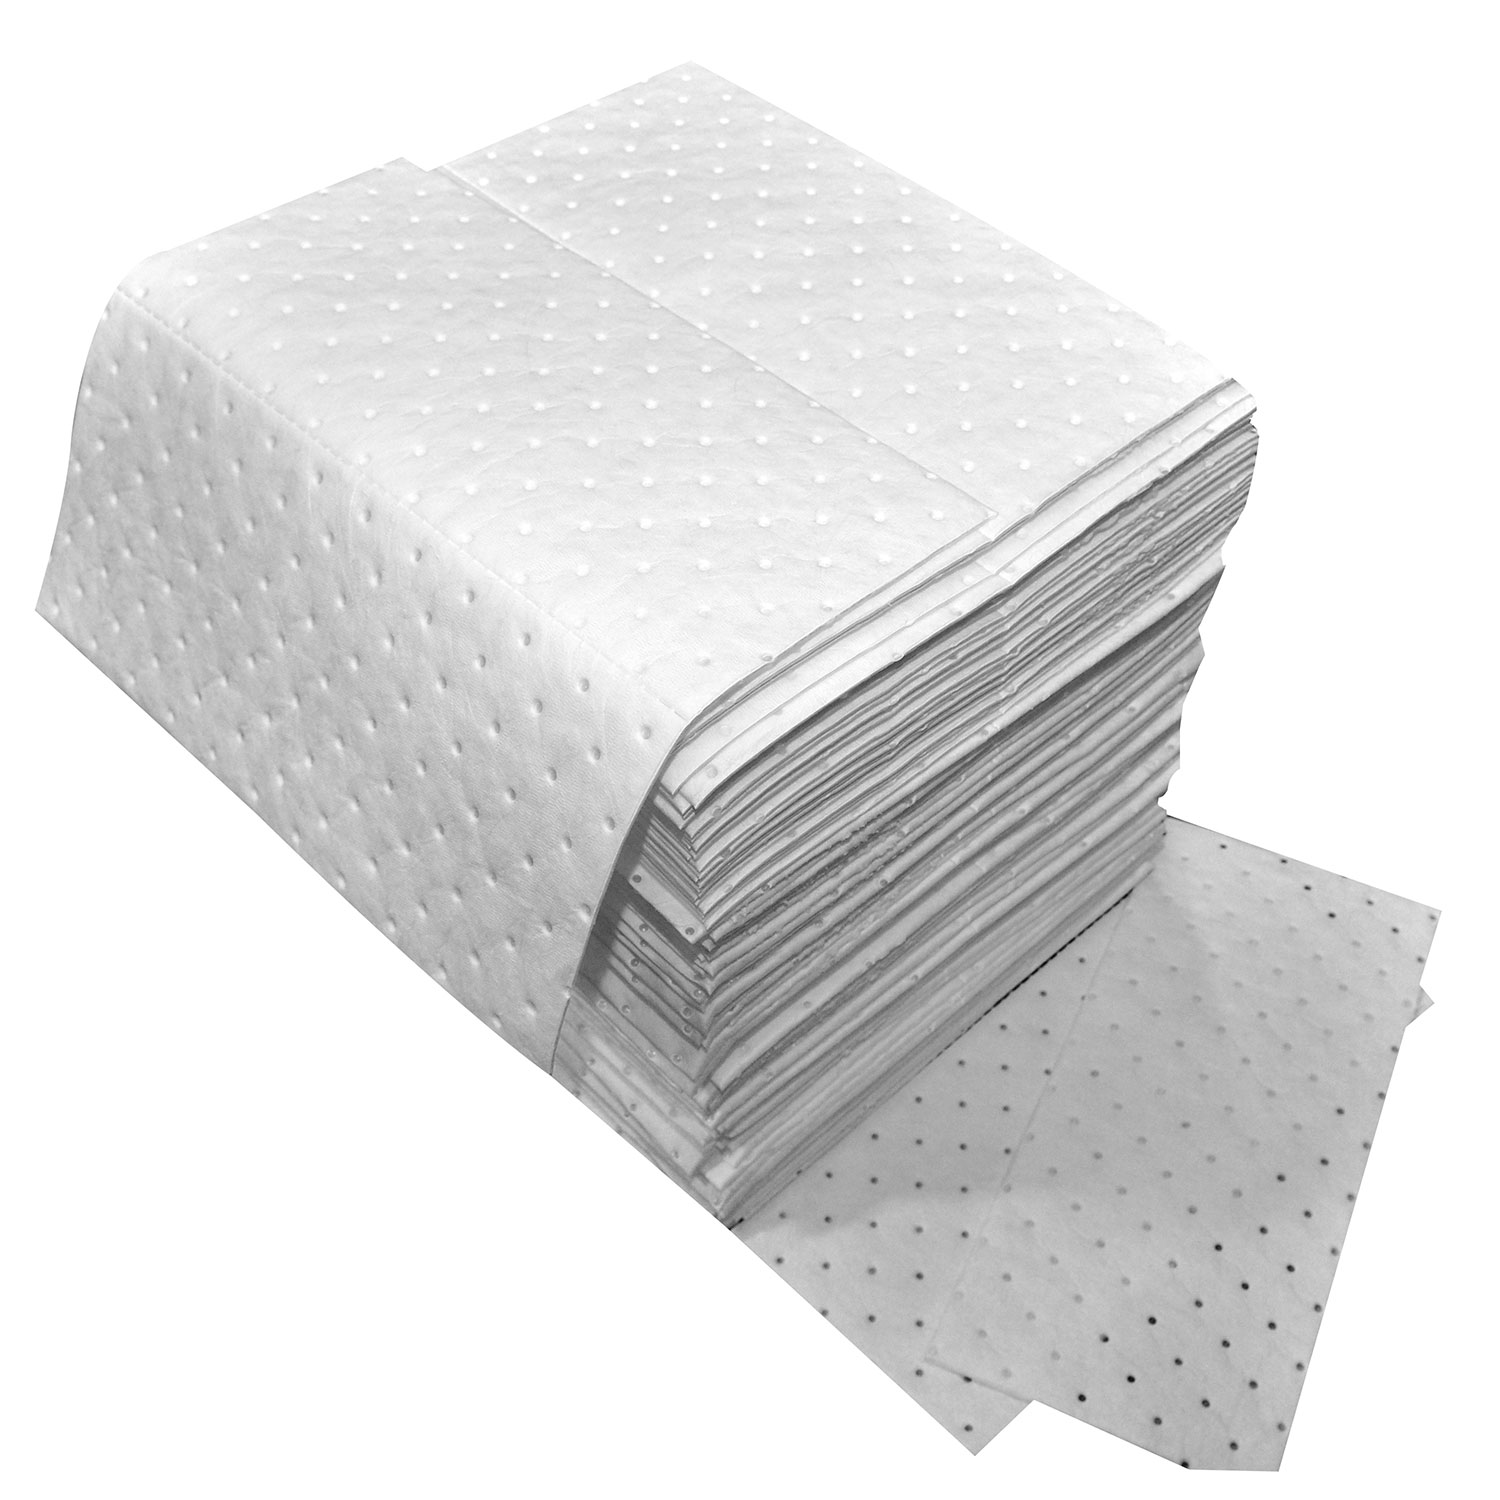 Oil Only White Absorbent Pads Mw By Spilfyter Z 72